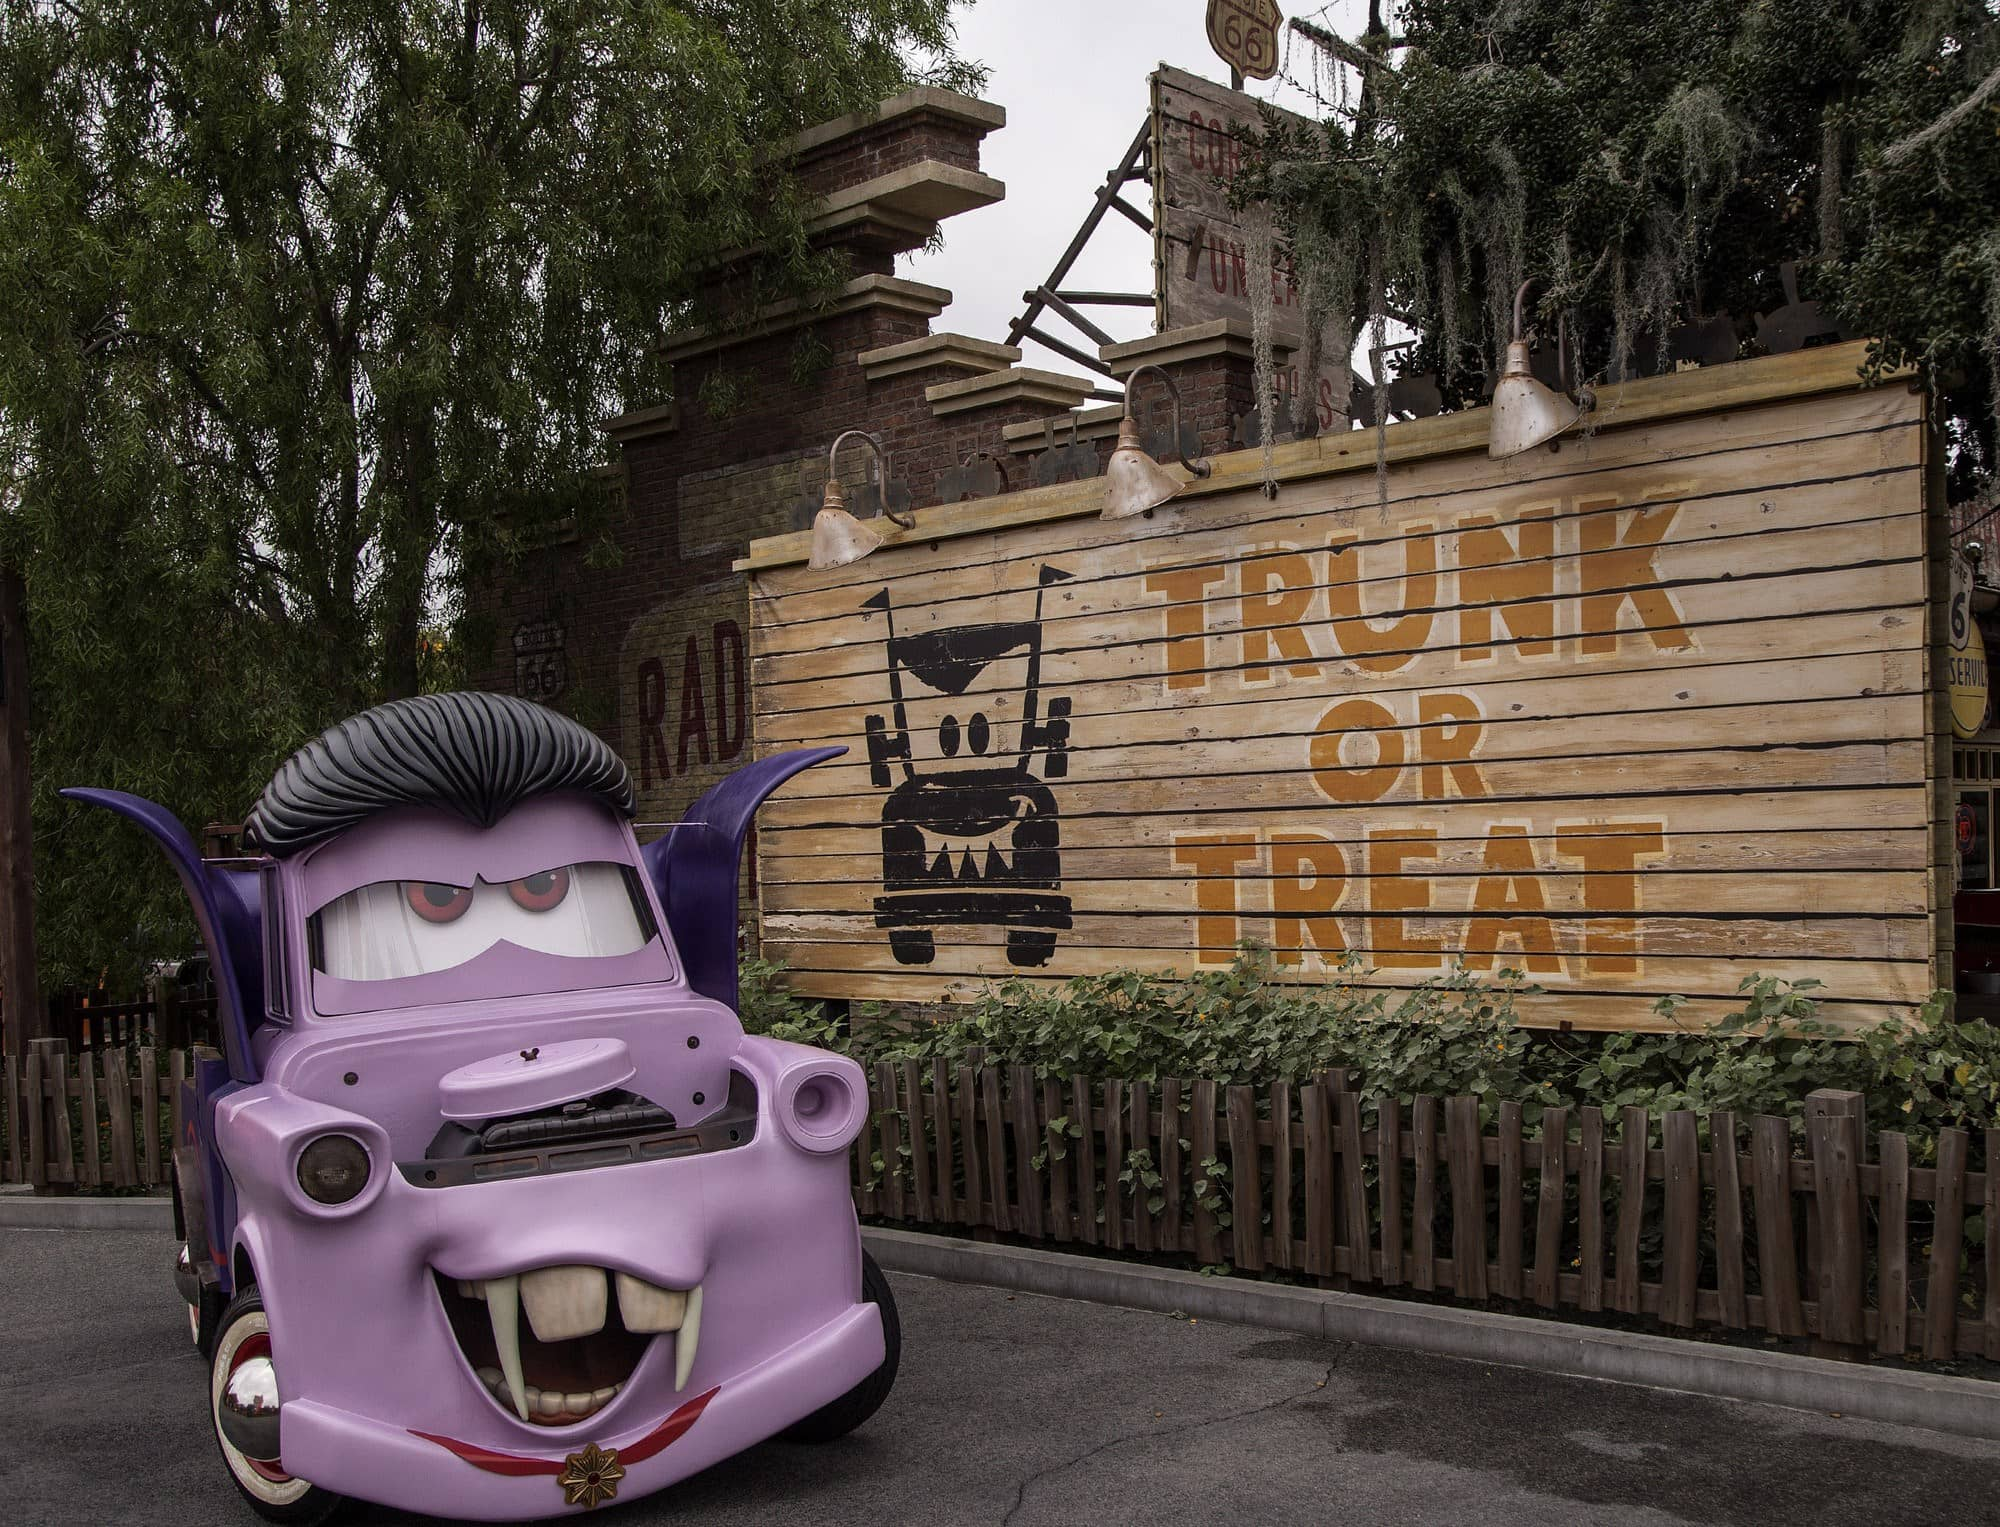 Mater dressed up as a vampire for Cars Land Haul-O-Ween ~ 10 Tips for Mickey's Halloween Party with Kids